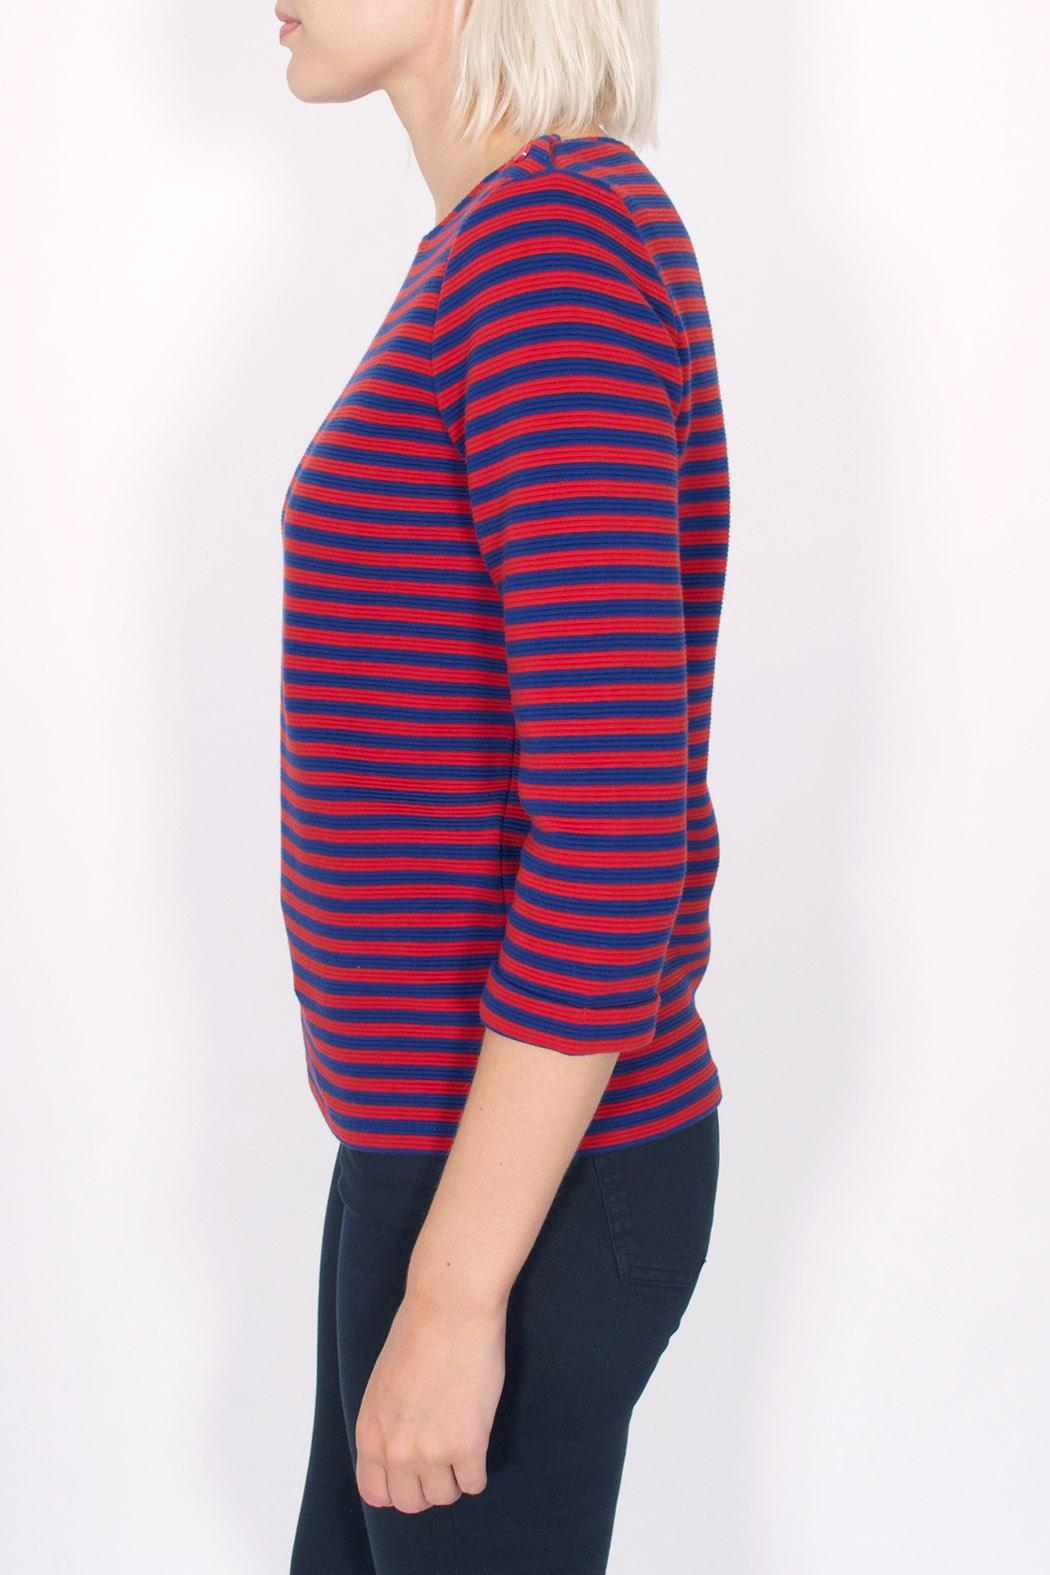 Sessun Emile Striped Top - Front Full Image